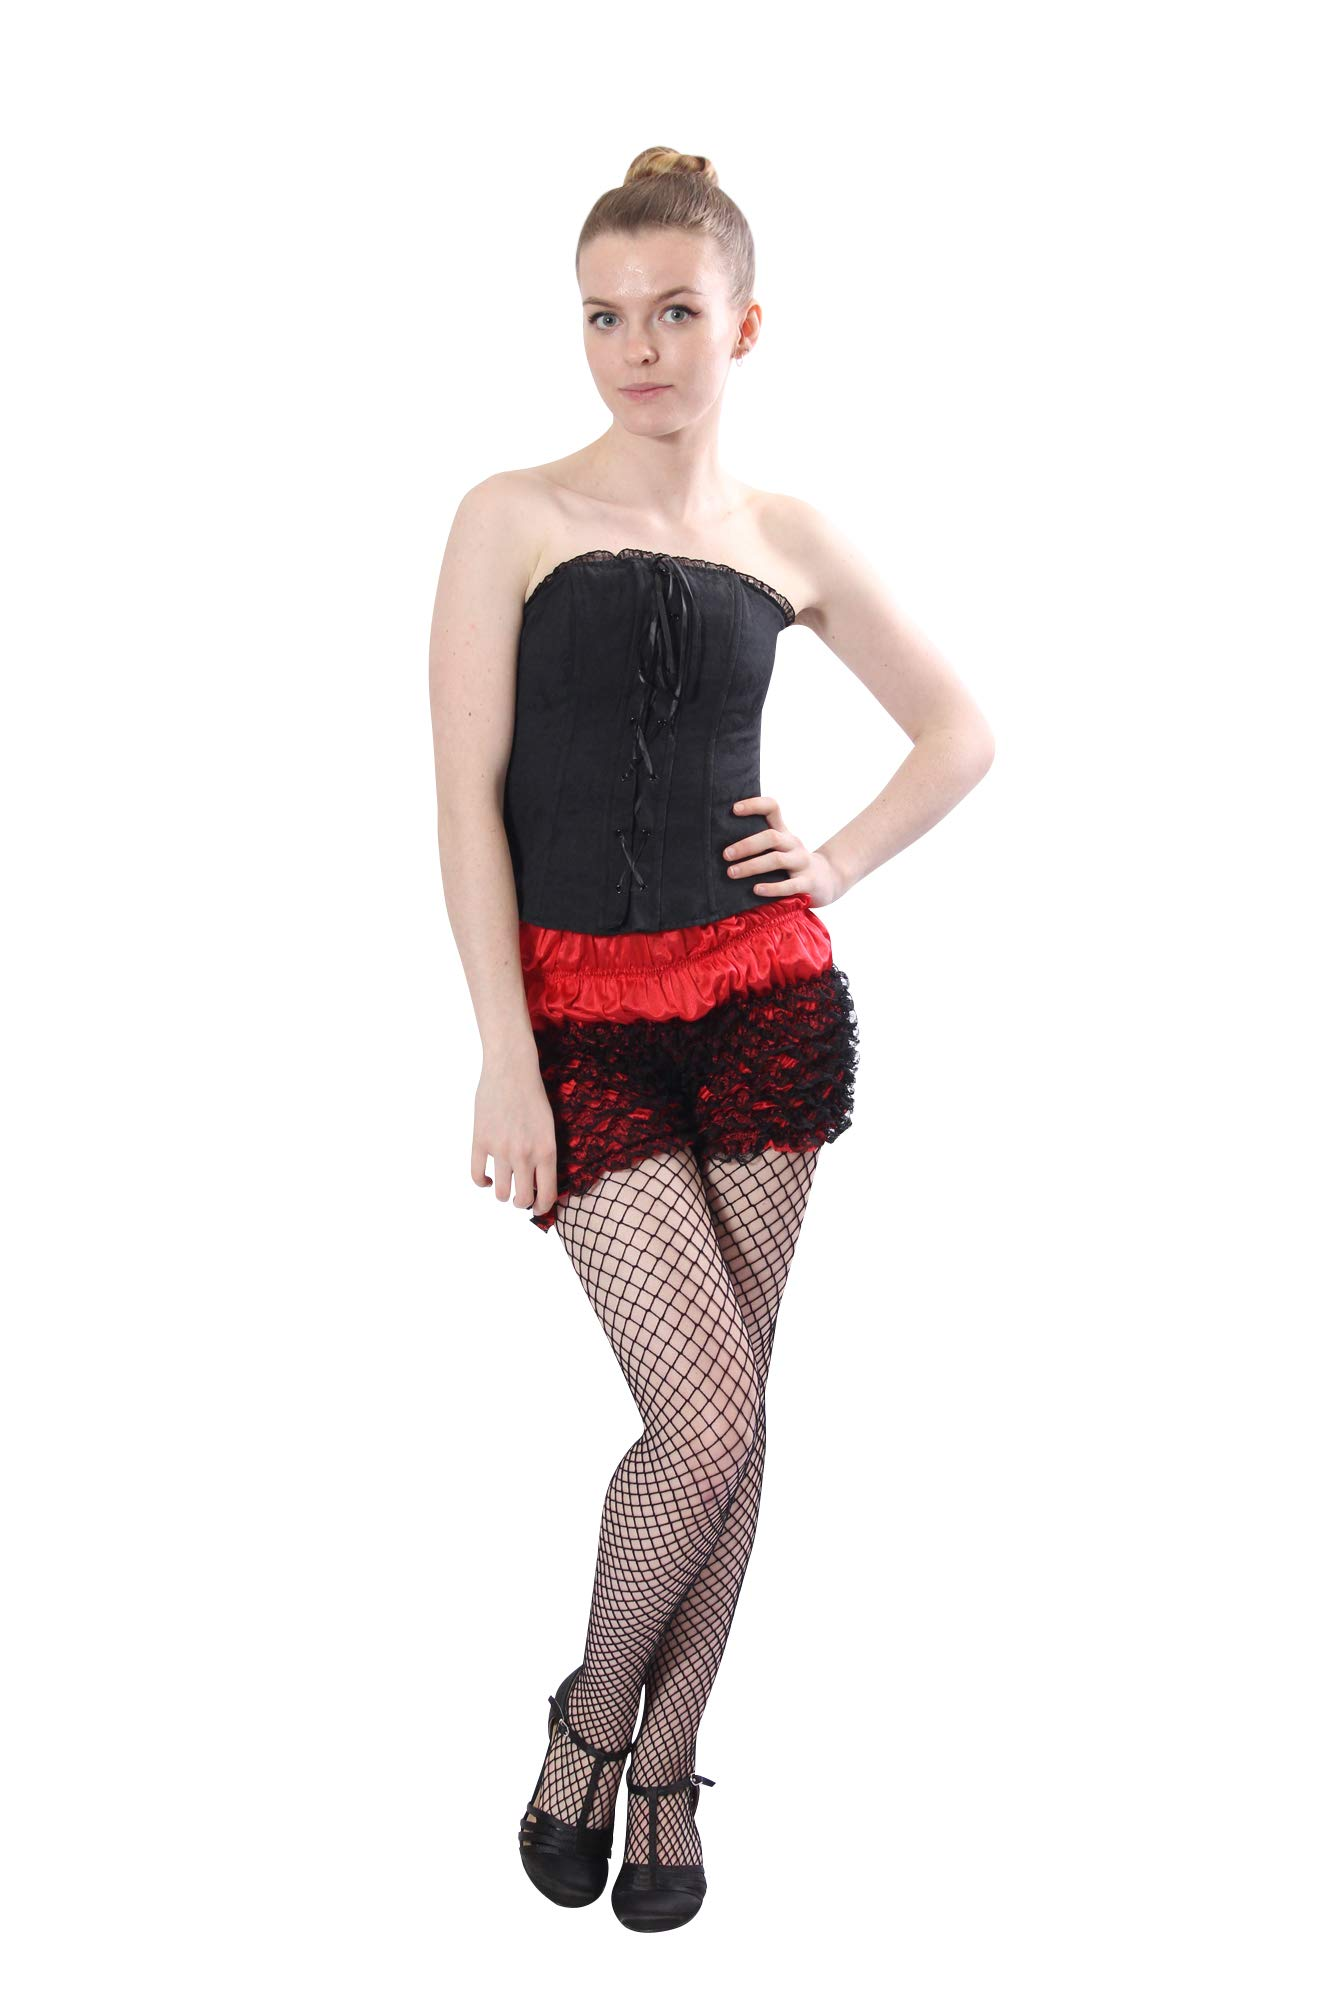 Malco Modes Womens Sexy Ruffle Panties Tanga Dance Bloomers Sissy Booty Shorts (Black/Red, X-Large) by Malco Modes